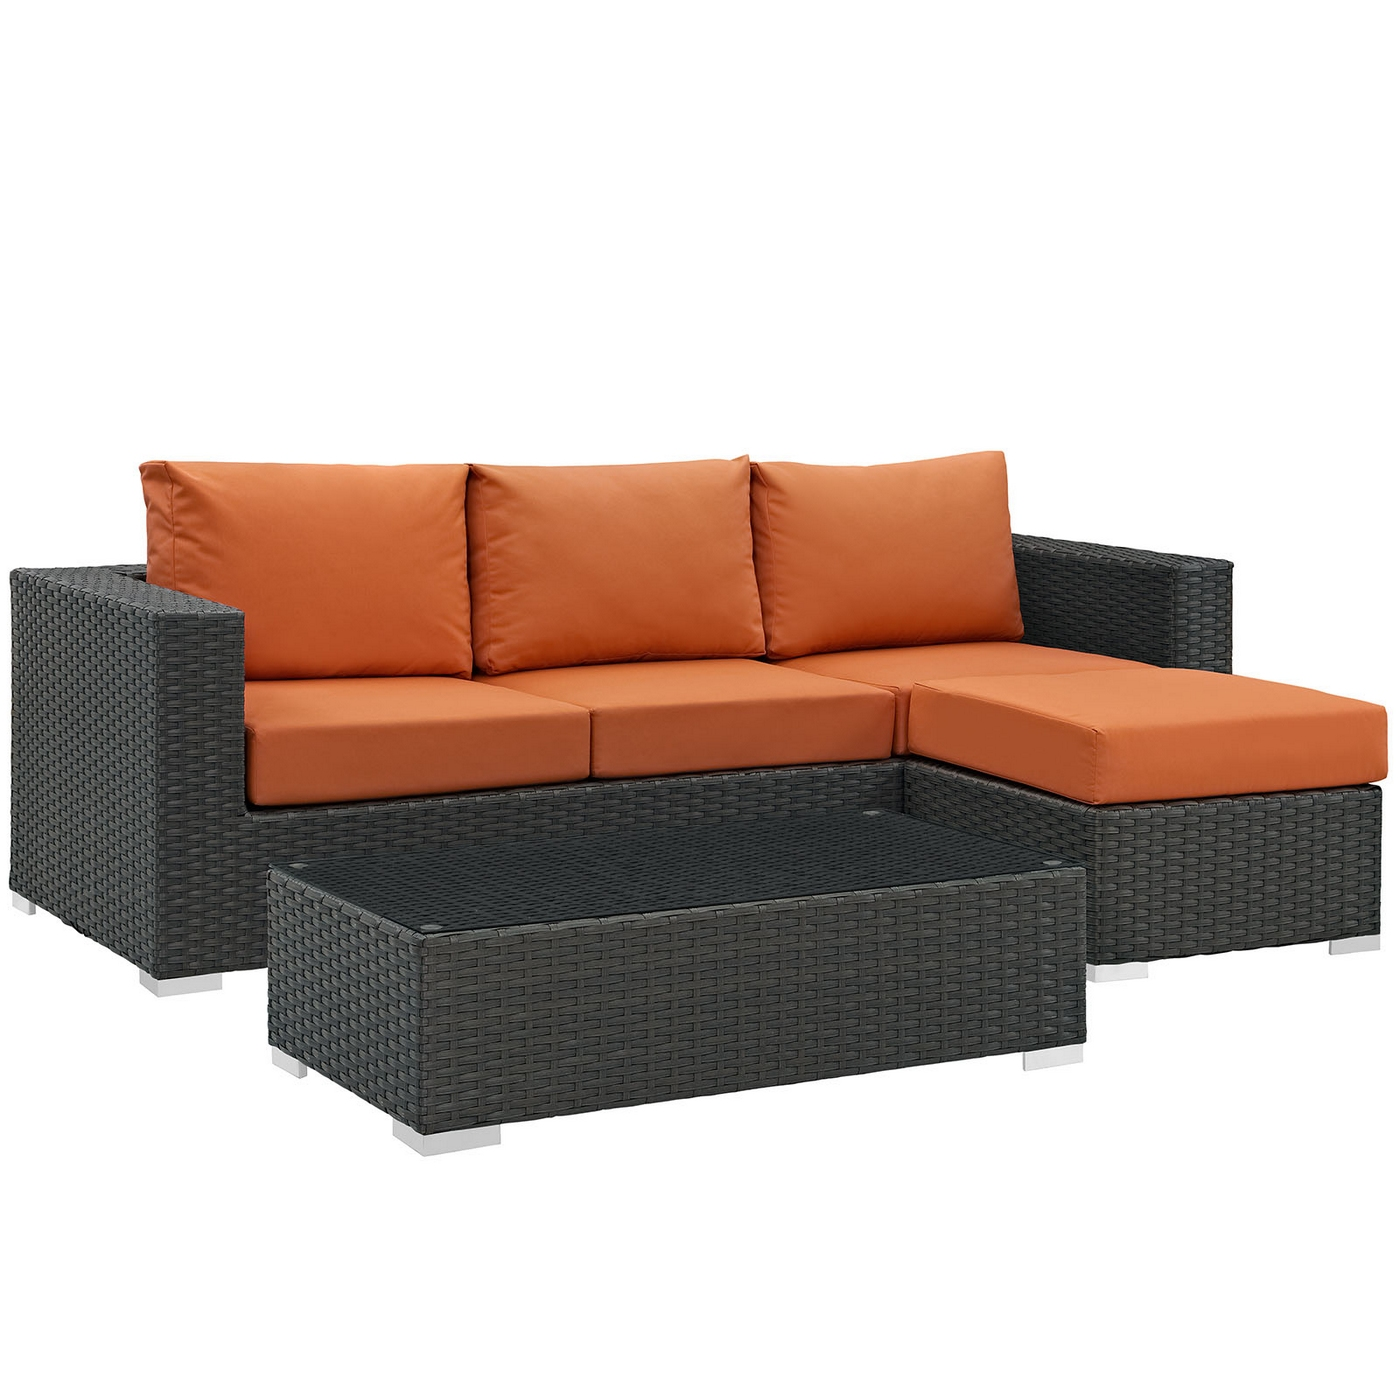 Rattan 3 Piece Sofa Details About Sojourn Rattan 3 Piece Outdoor Patio Sunbrella Sectional Sofa Set Cushion Canvas